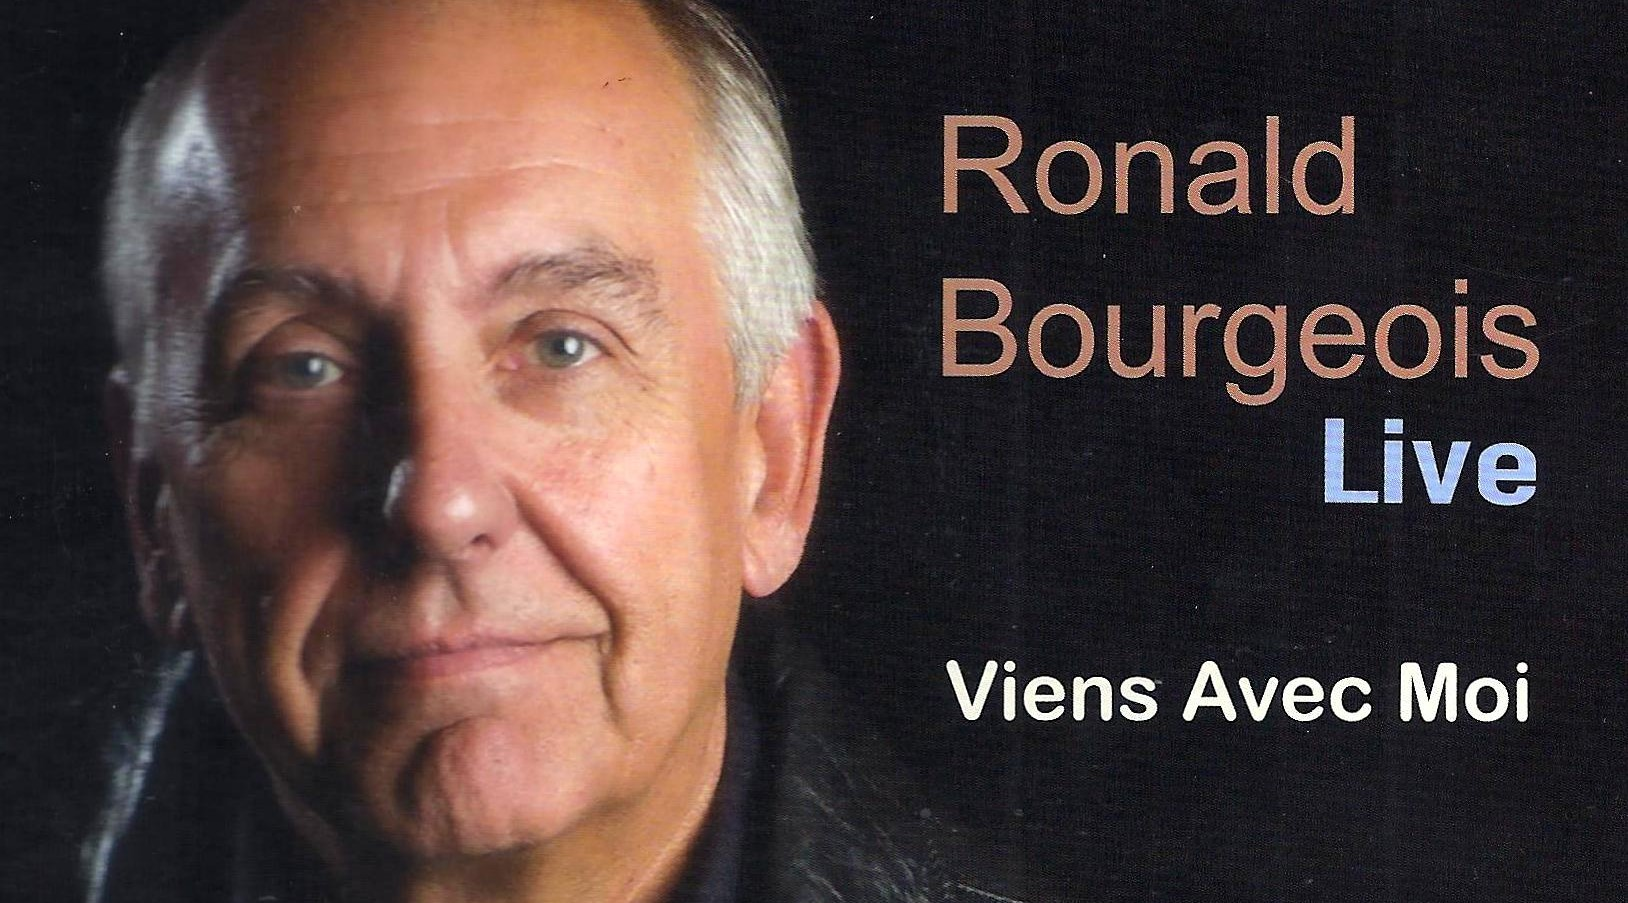 RONALD BOURGEOIS CD scan0138